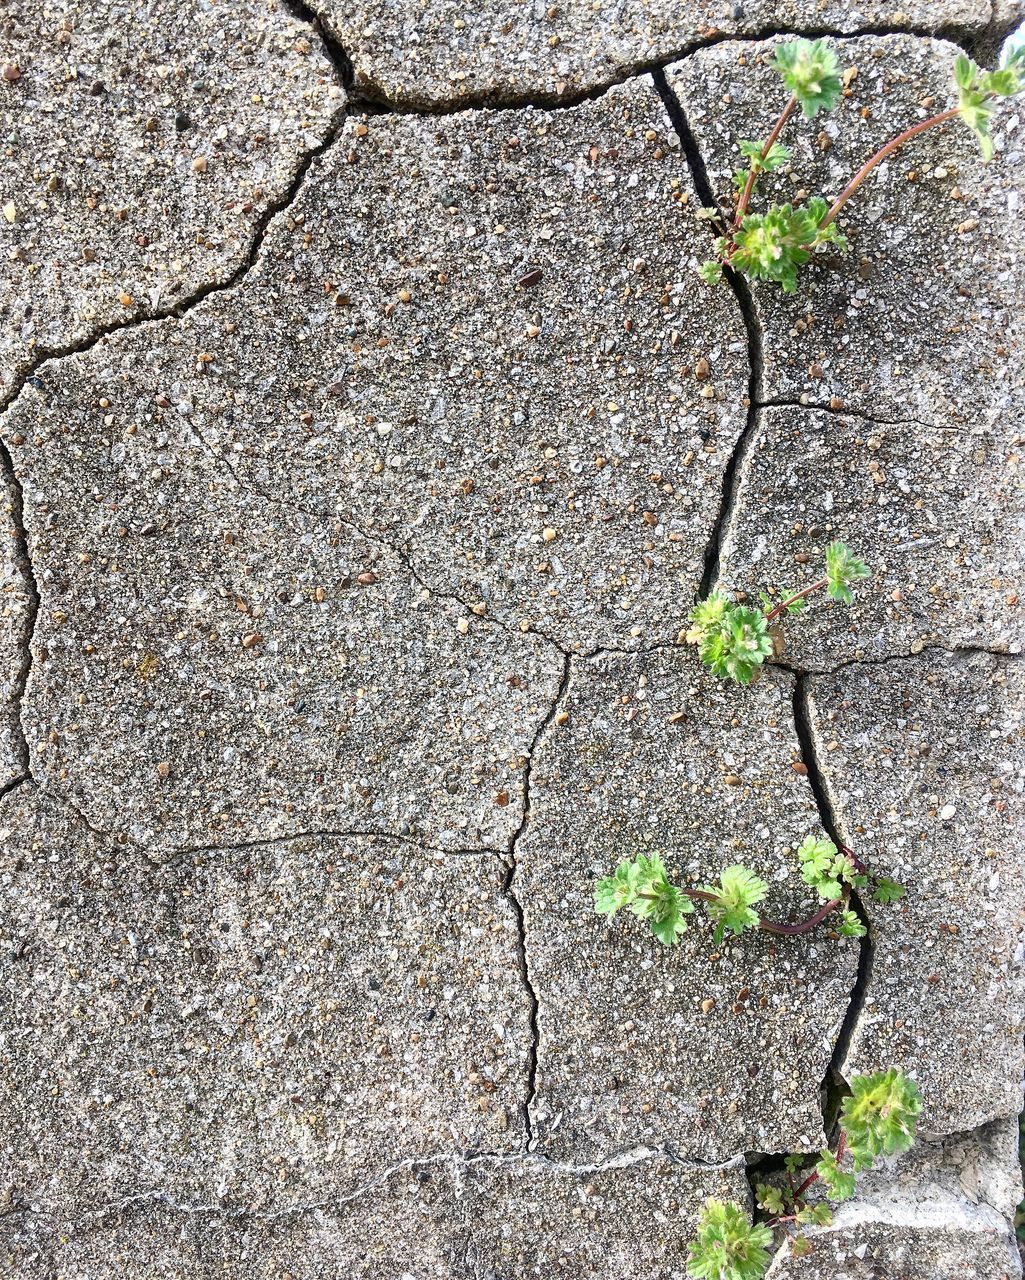 cracked, growth, no people, plant, nature, day, textured, close-up, outdoors, beauty in nature, full frame, fragility, wall - building feature, leaf, weathered, plant stem, concrete, gray, vulnerability, green color, cement